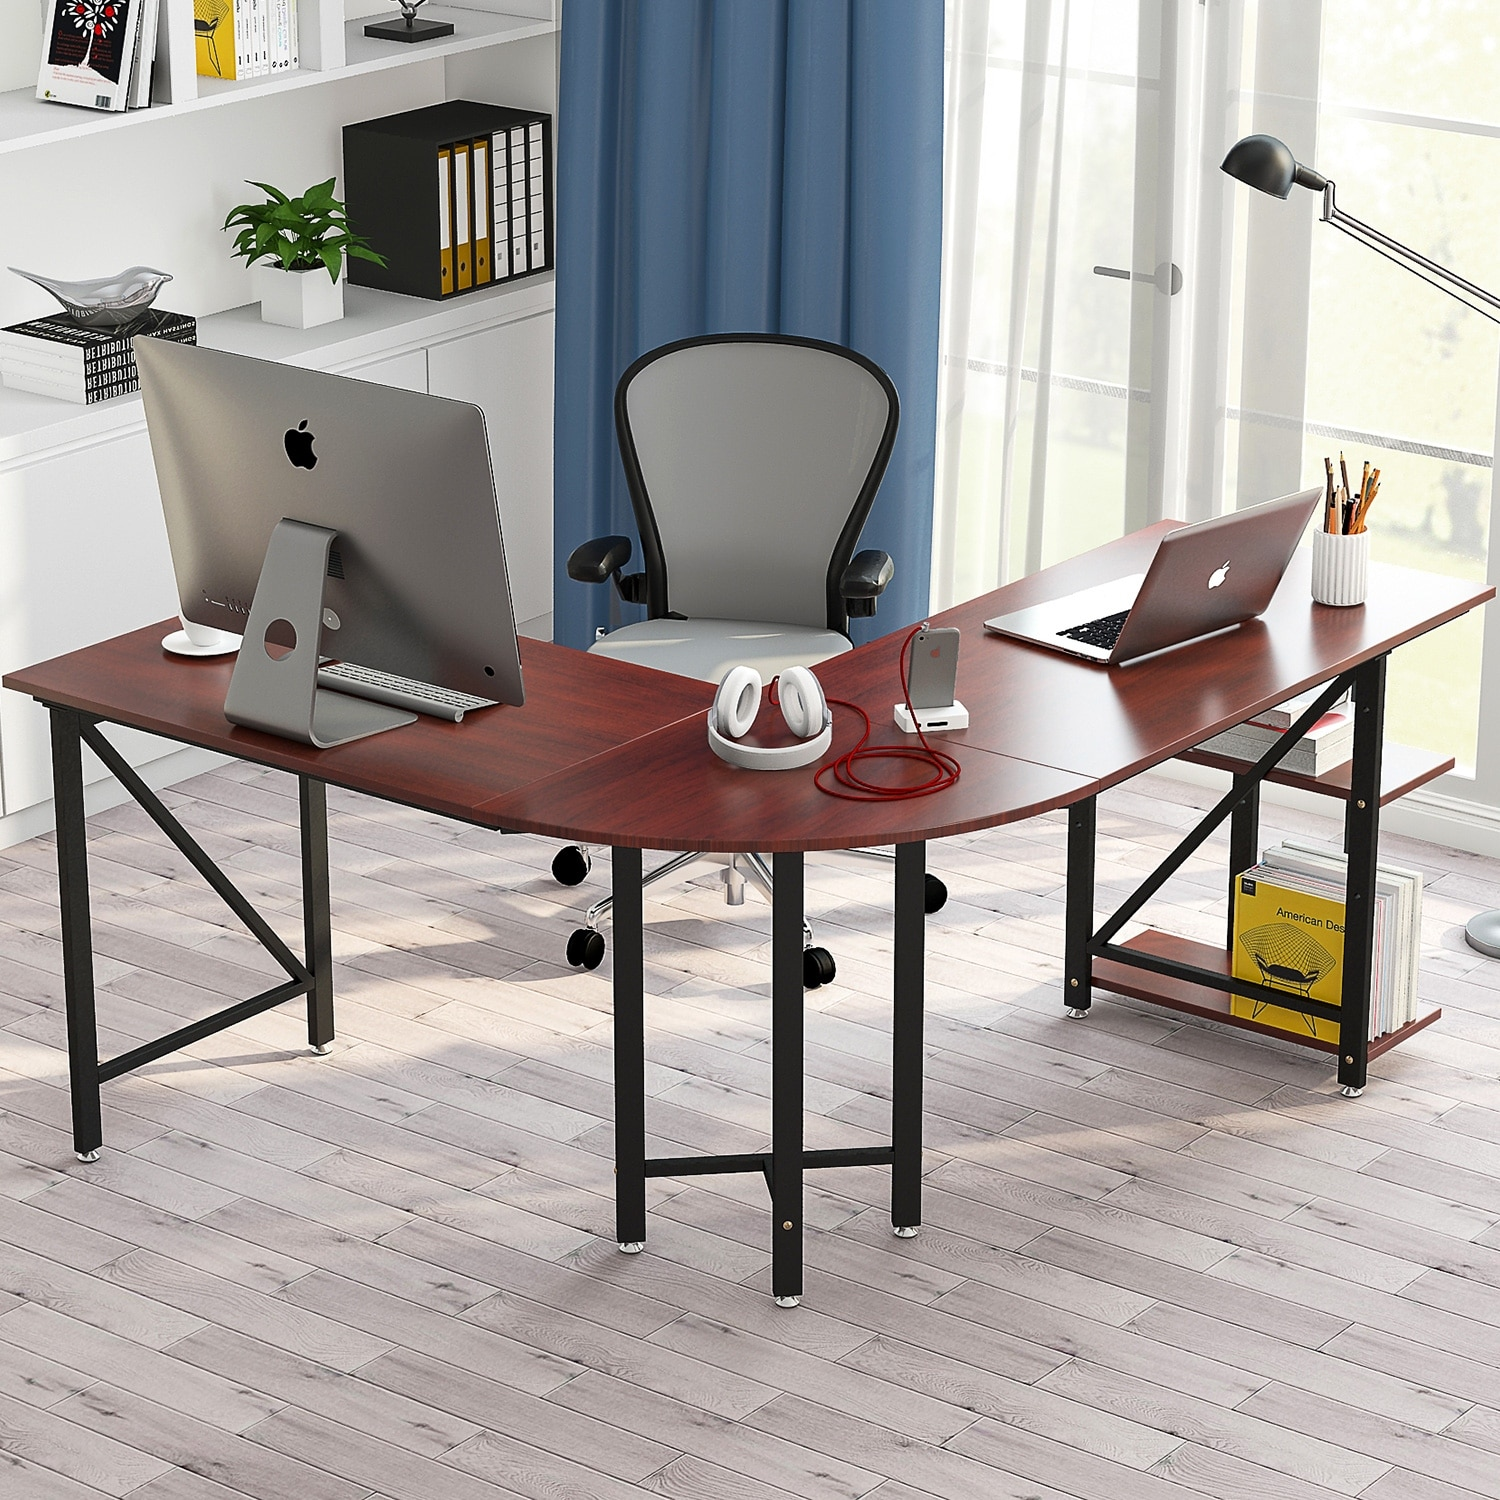 Large L Shaped Desk 67 Modern Corner Computer Study Workstation Gaming Table With Shelves For Home Office Free Shipping Today